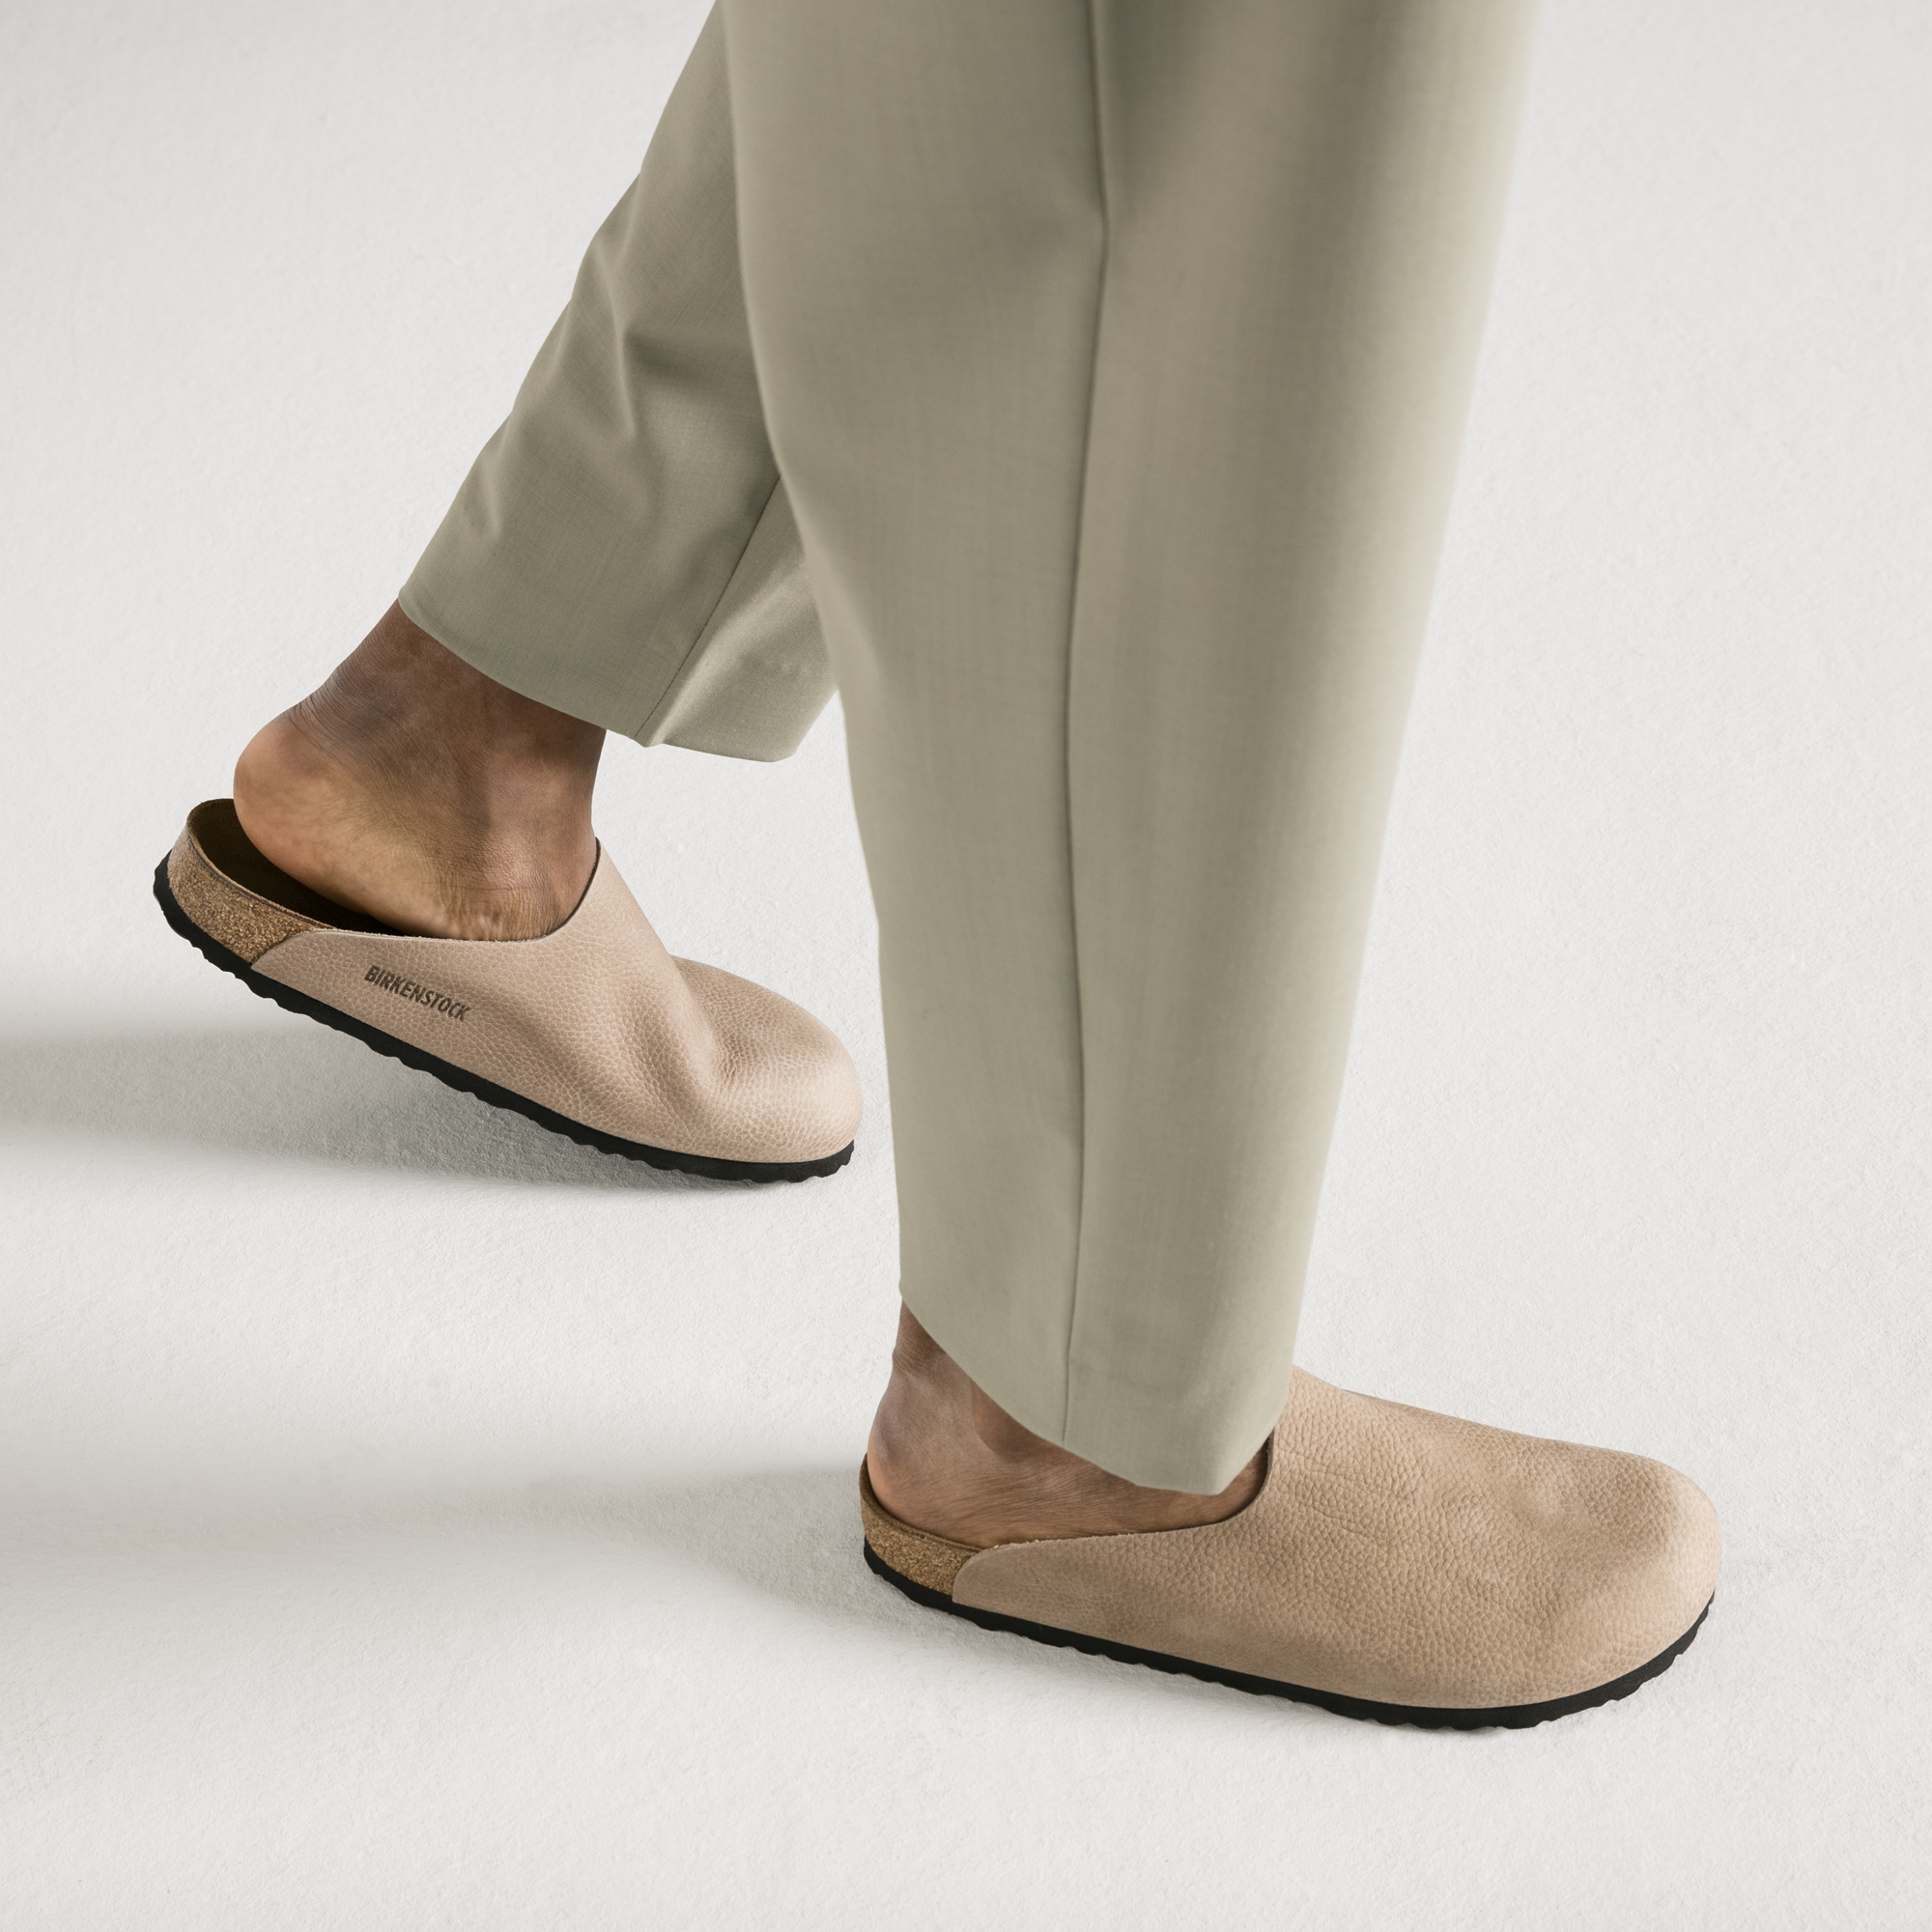 34753a04257 ... Amsterdam Nubuck Leather Steer Taupe